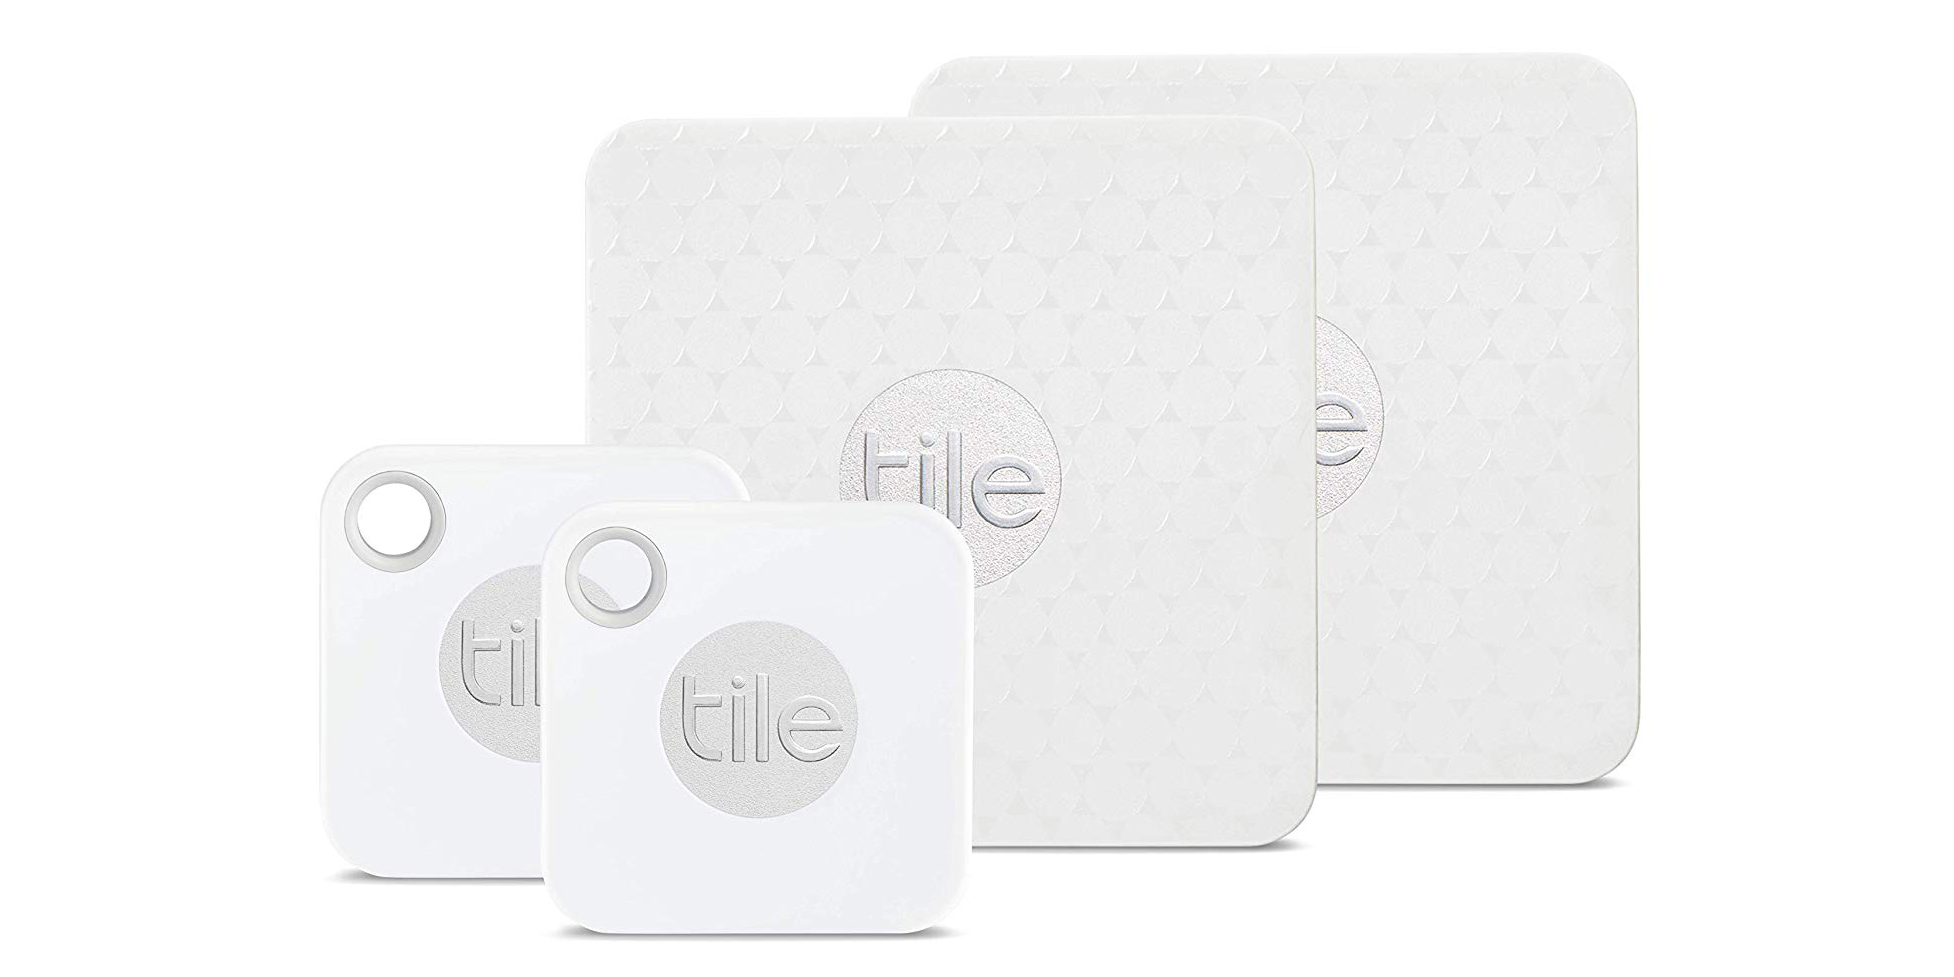 Tile Mate And Slim Tracker Combos Are On Sale For 40